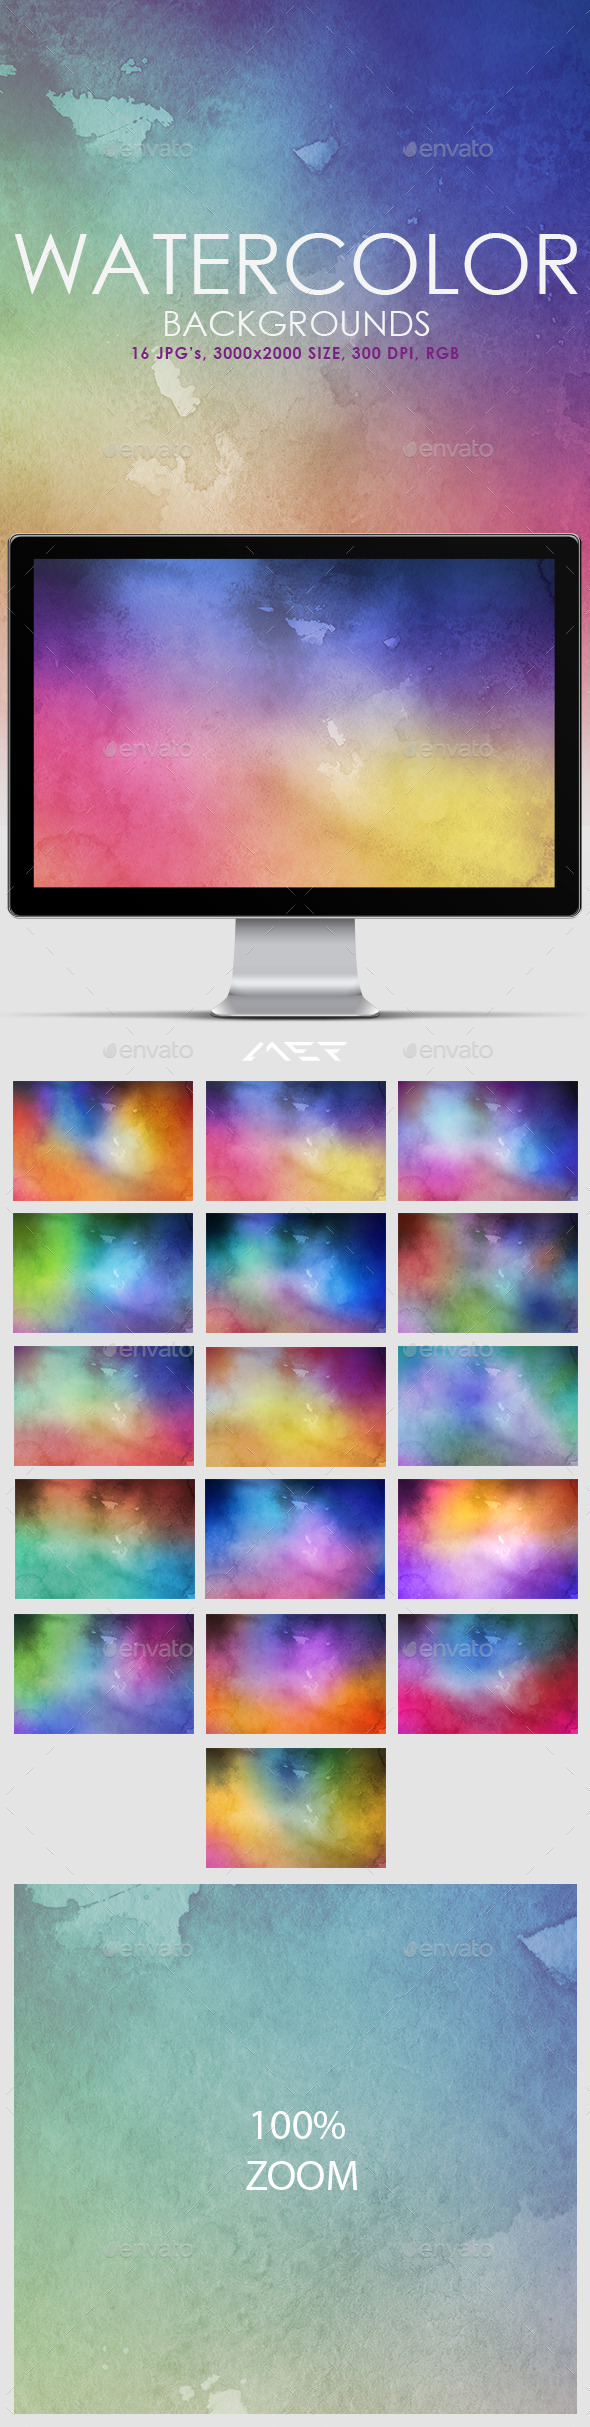 16 Watercolor Backgrounds - Backgrounds Graphics